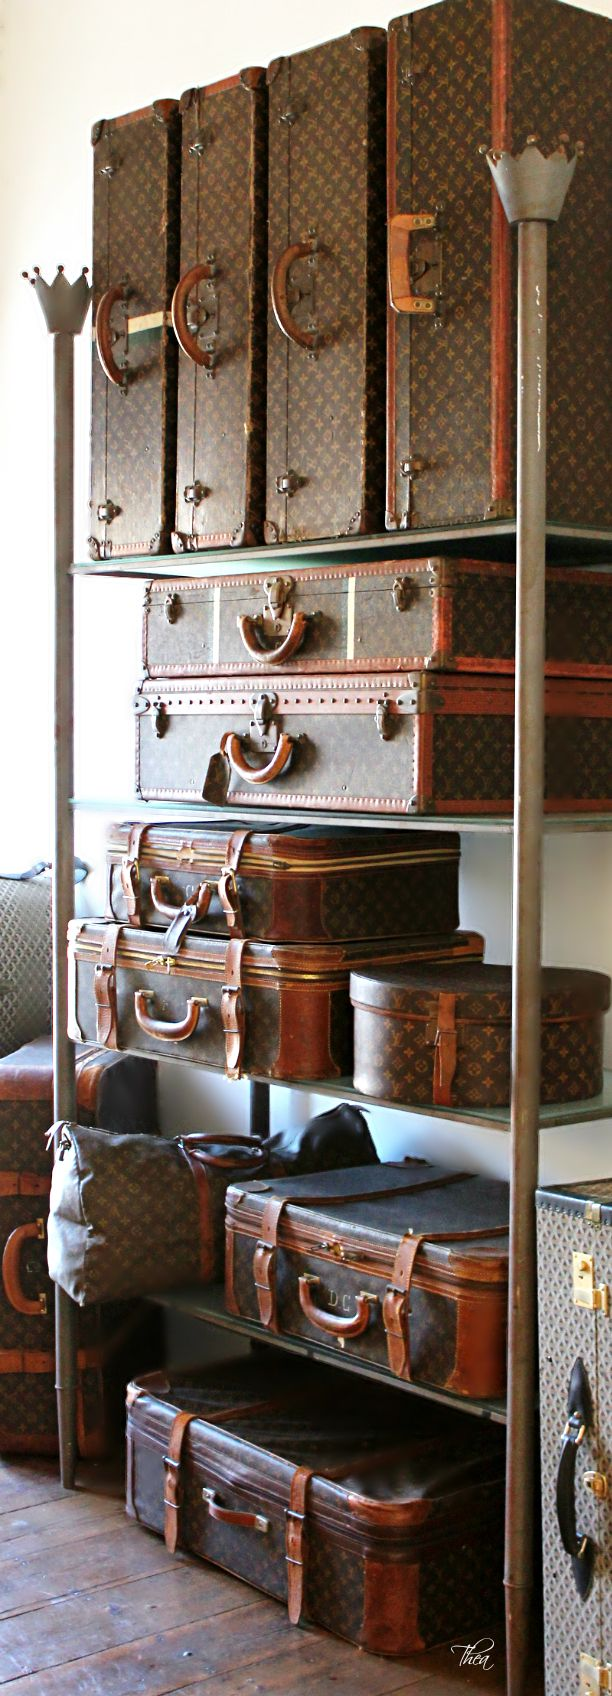 Louis Vuitton ● Luggage Room